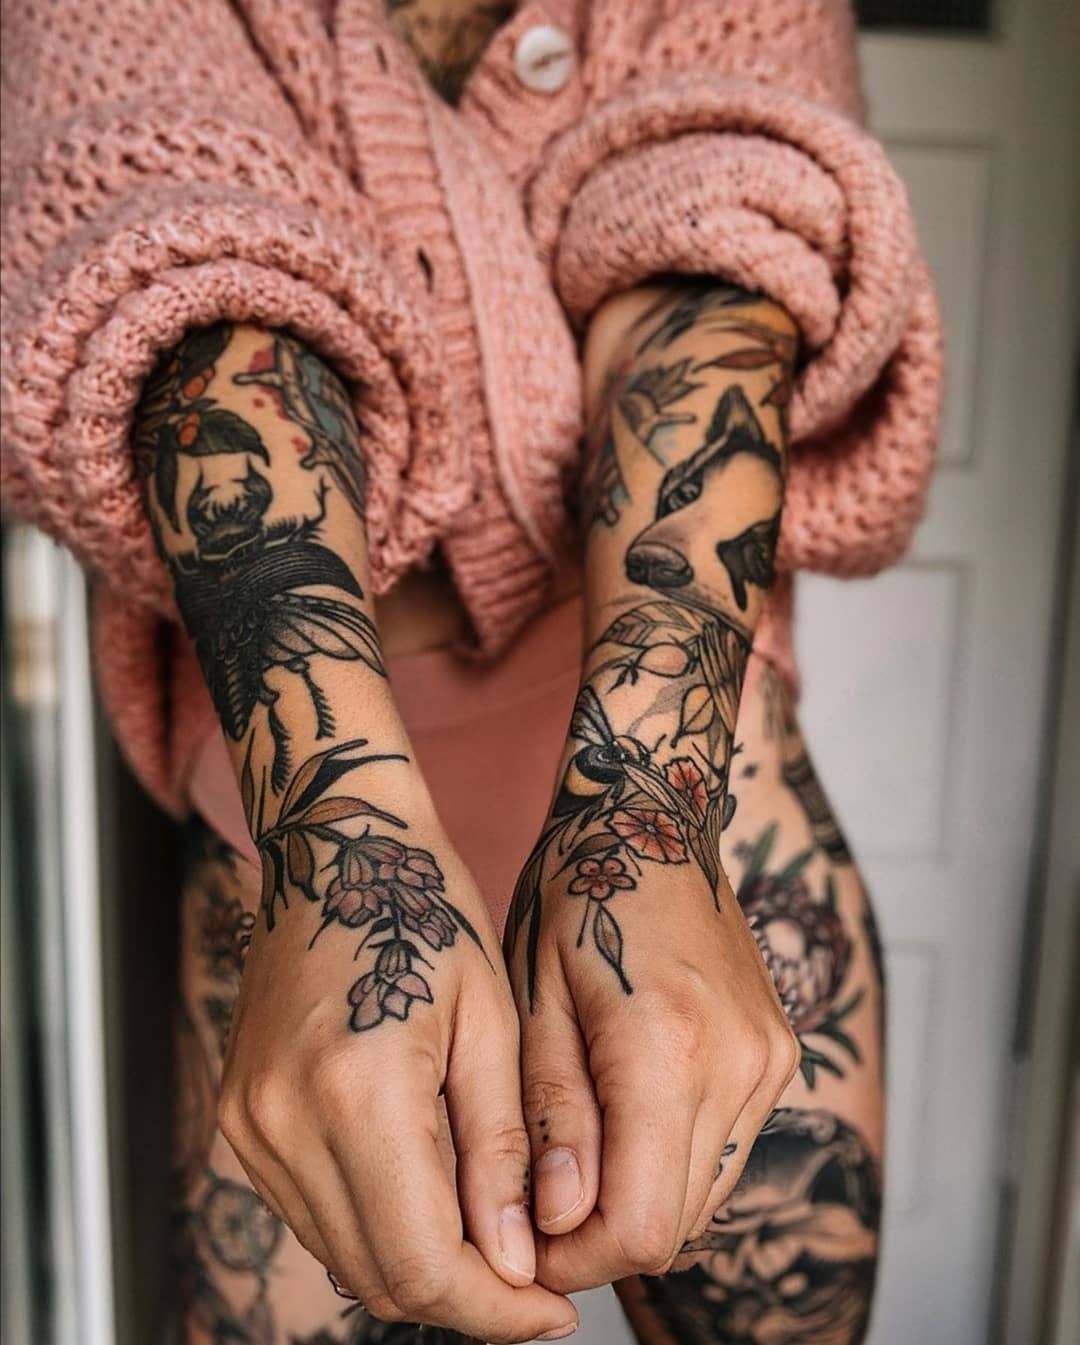 Sleeves Tattoo from wrist to shoulder, girl model